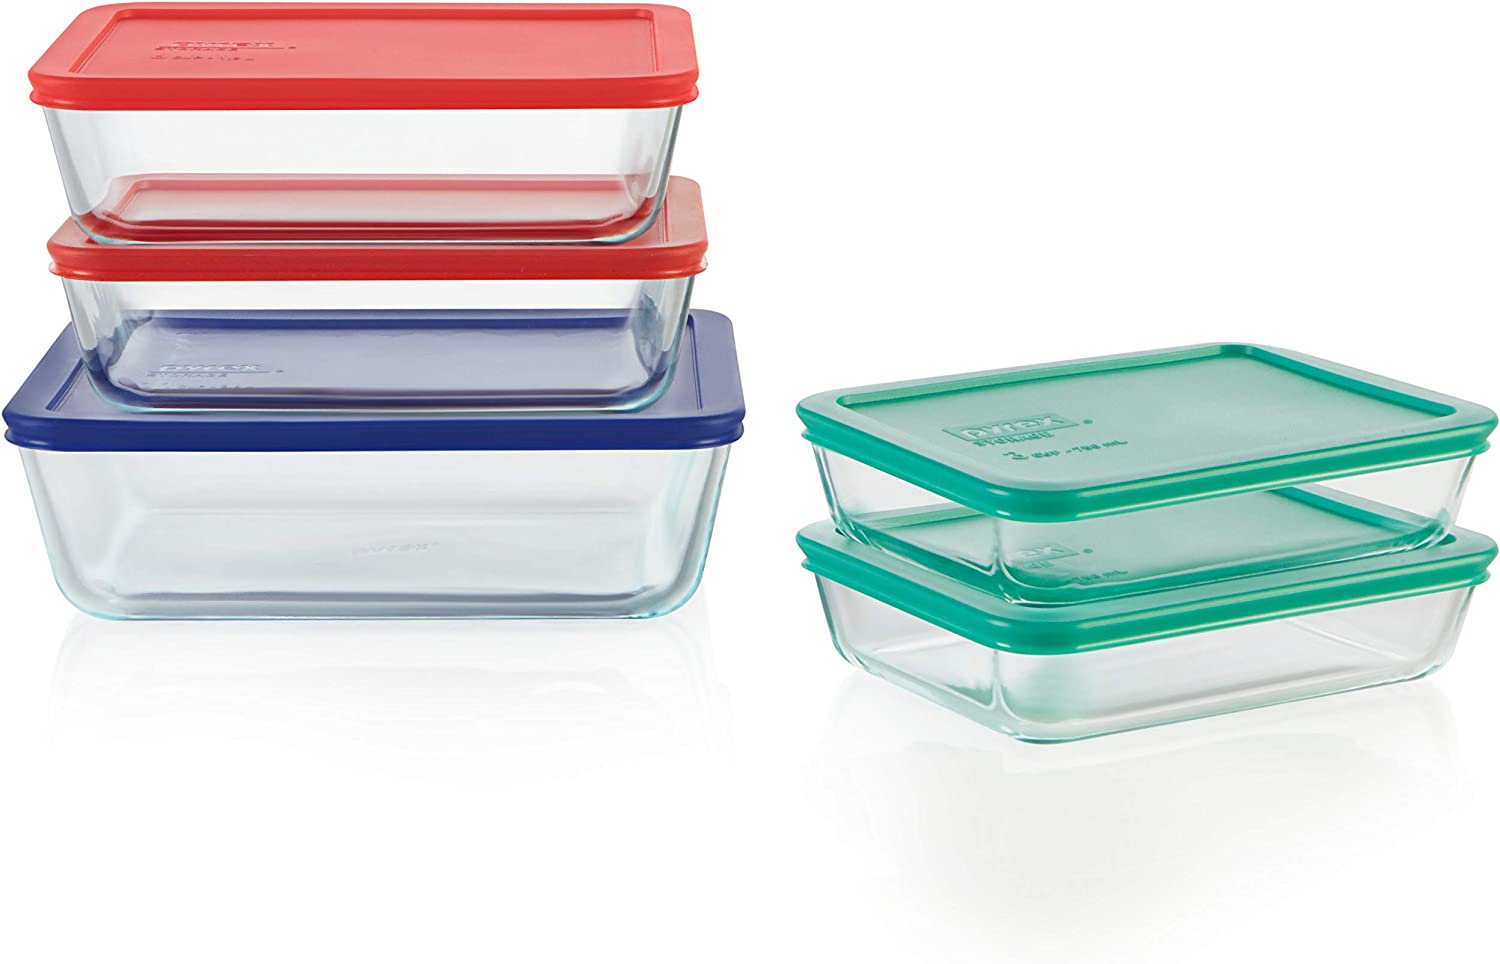 Pyrex 1136617 Glass food storage set, 10-Piece